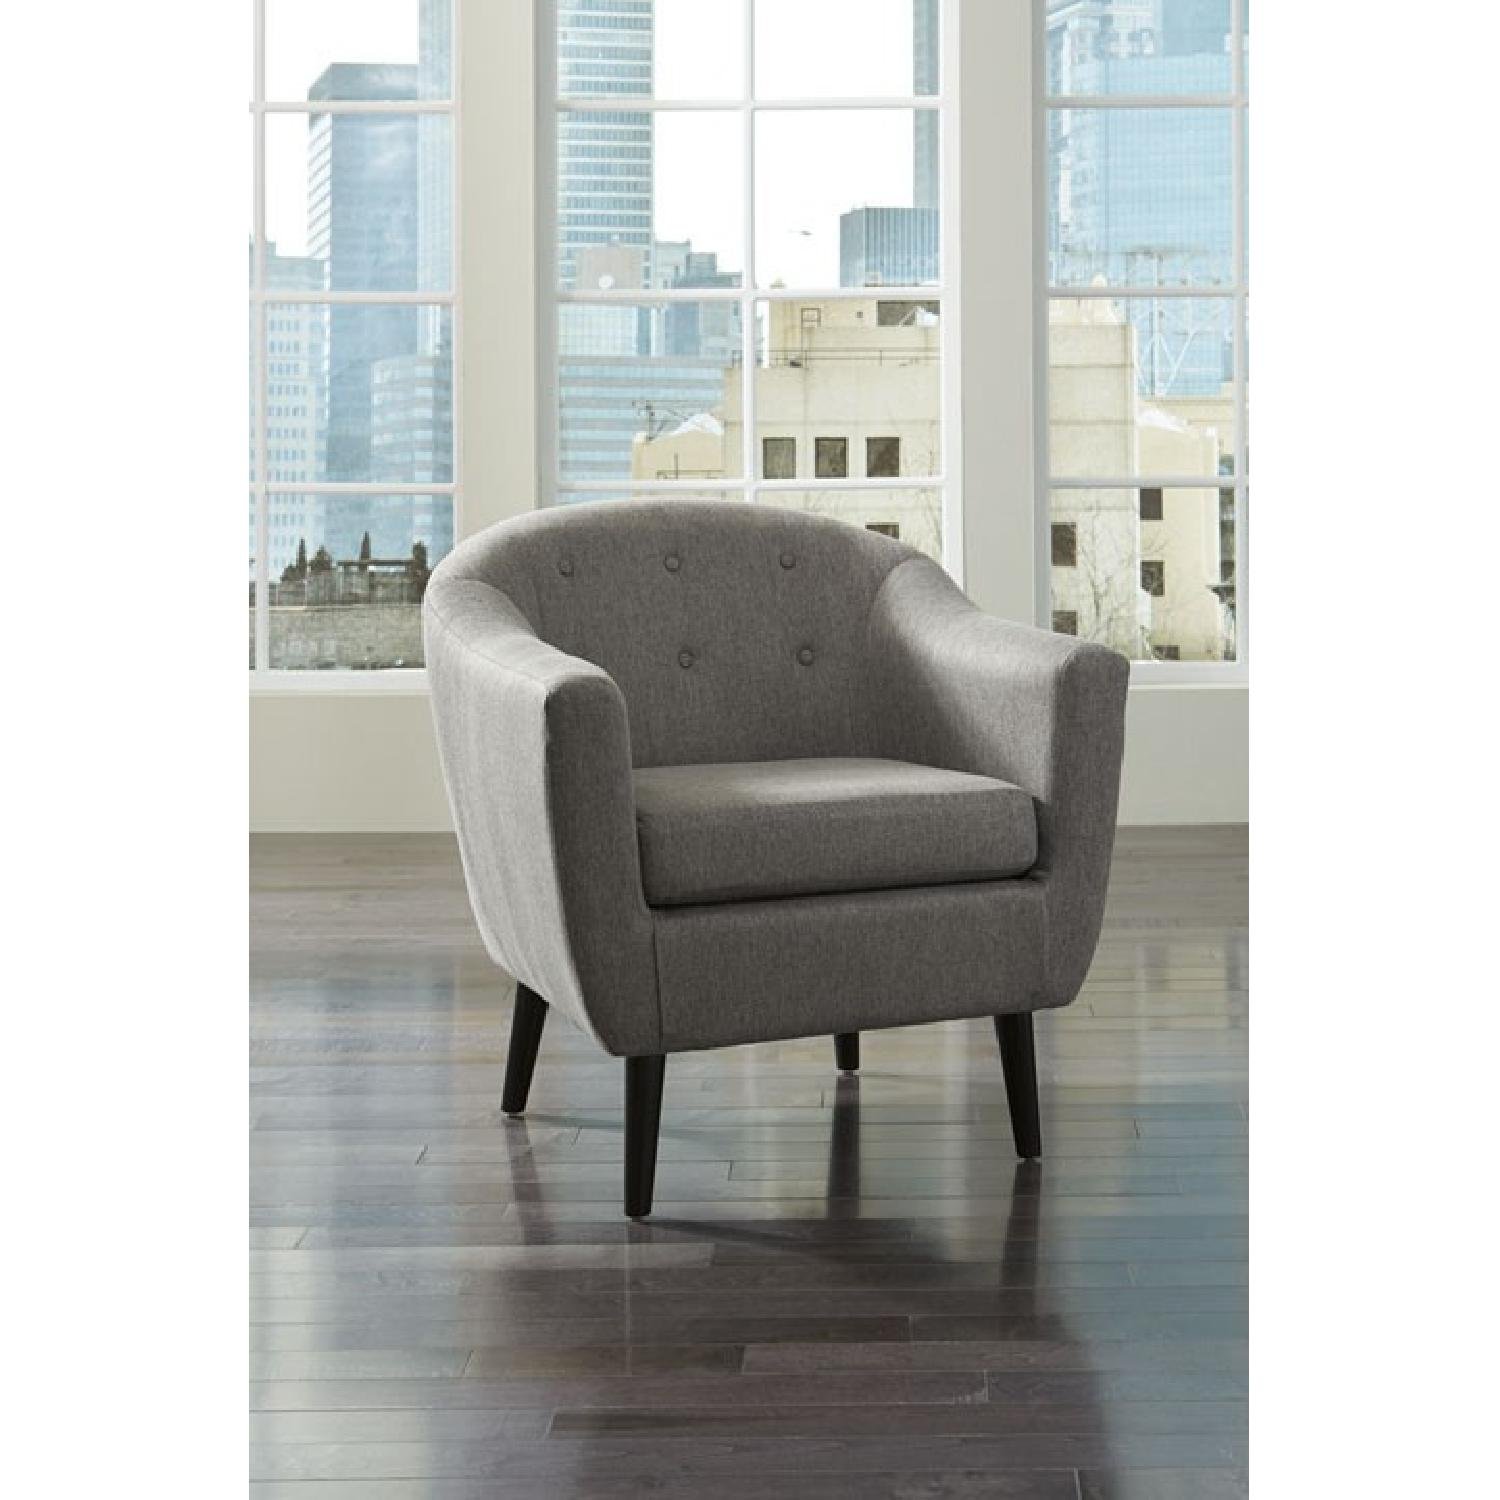 Ashley's Gray Klorey Accent Chair - image-1